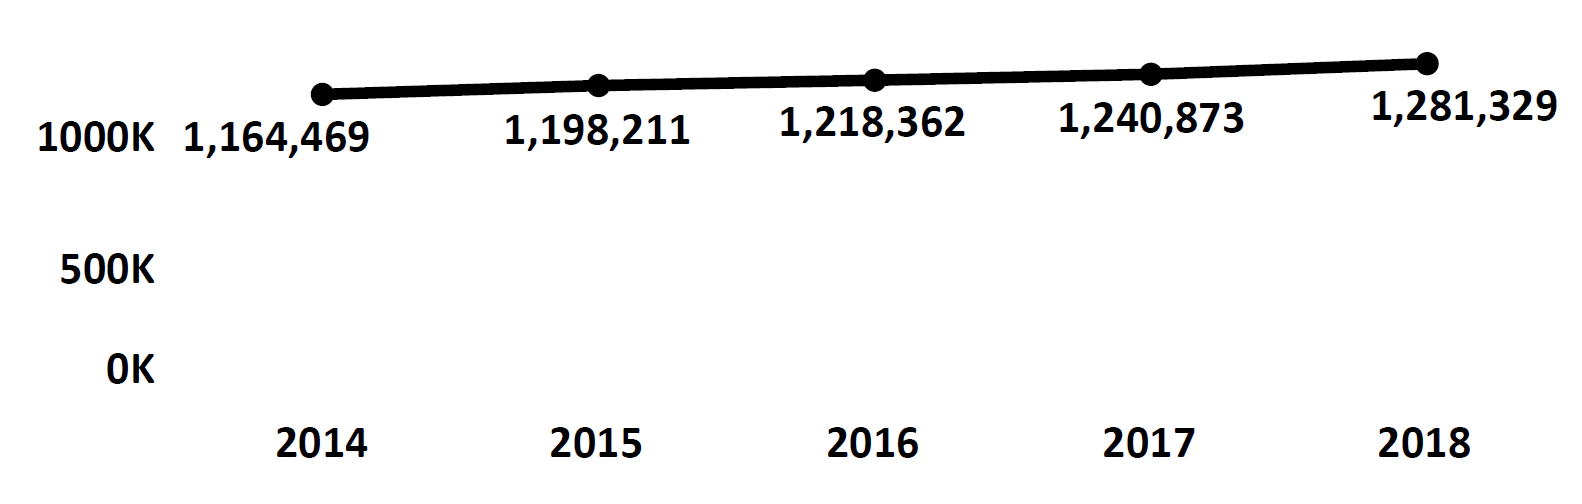 Graph of active Do Not Call registrations in West Virginia each fiscal year from 2014 to 2018. In 2014 there were 1.1 million numbers registered, which increased each year. In 2018 there were 1.2 million numbers registered.